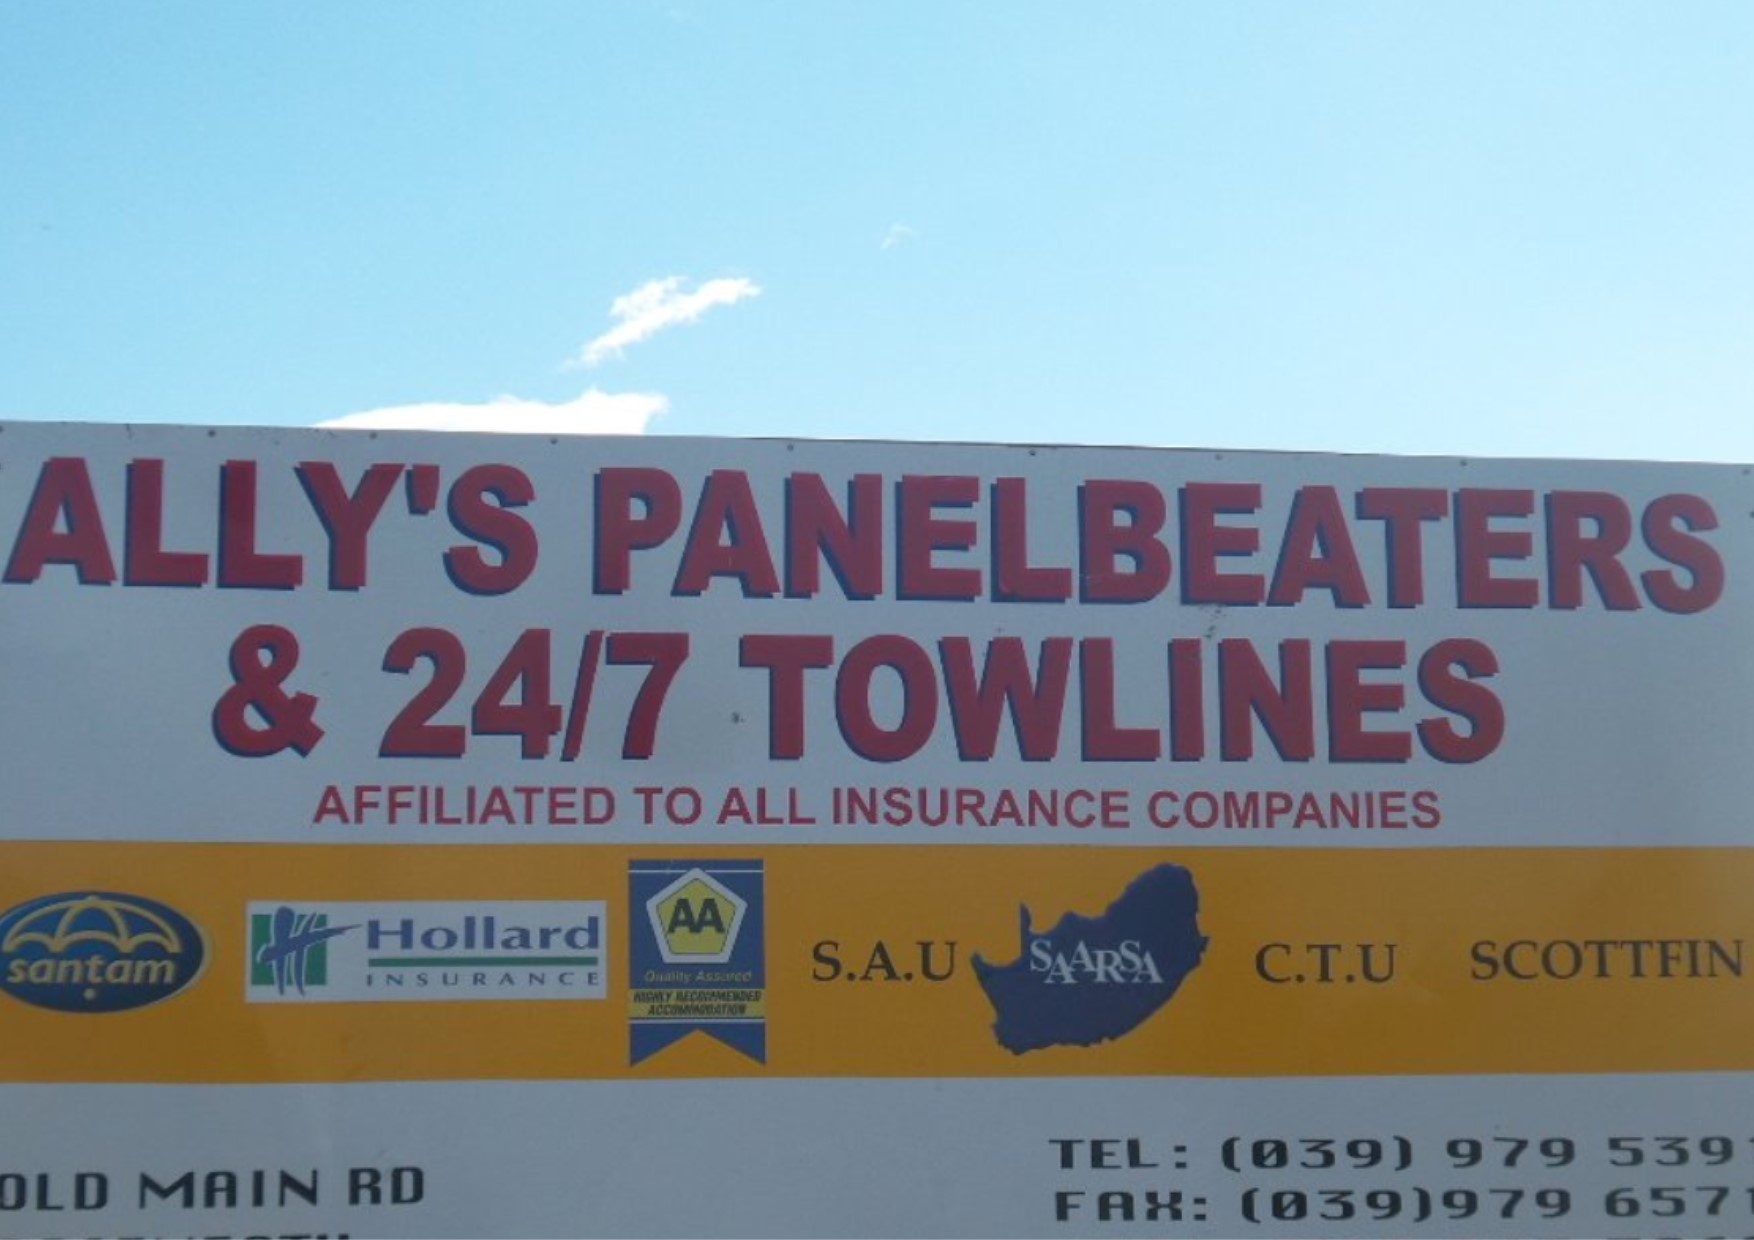 Allys Panelbeaters and Towlines